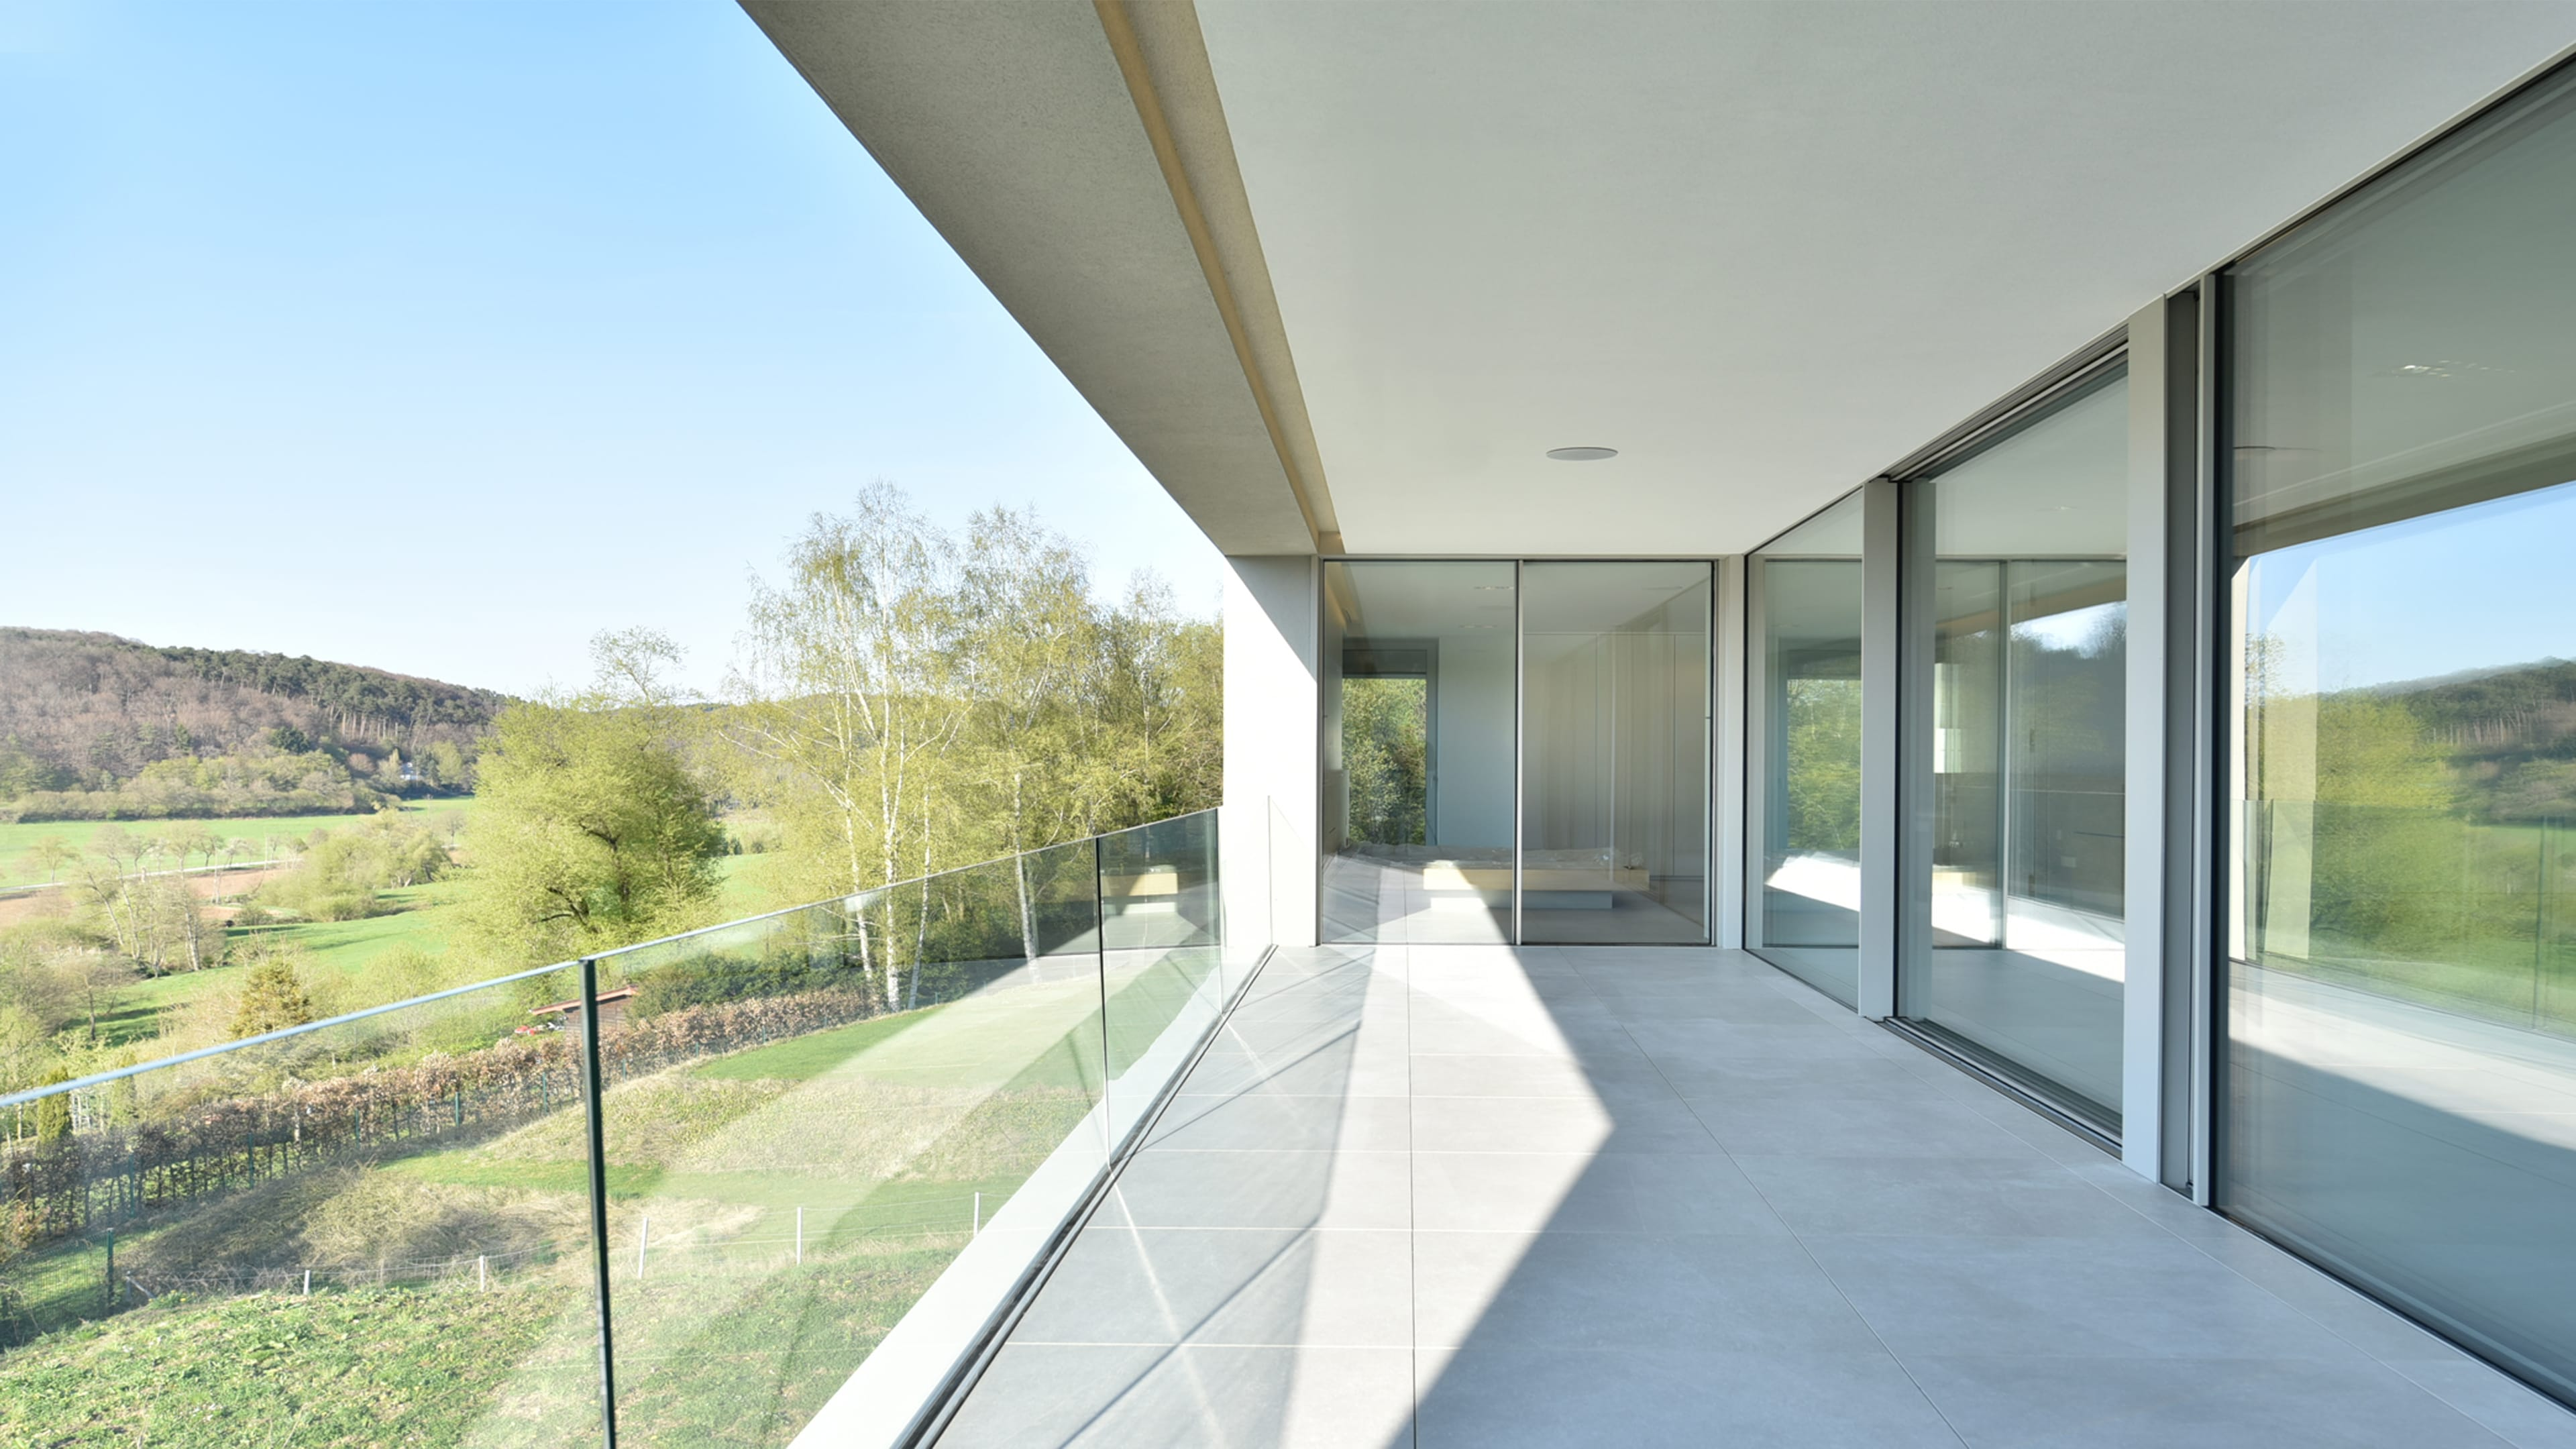 Cout construction maison luxembourg for Cout construction villa